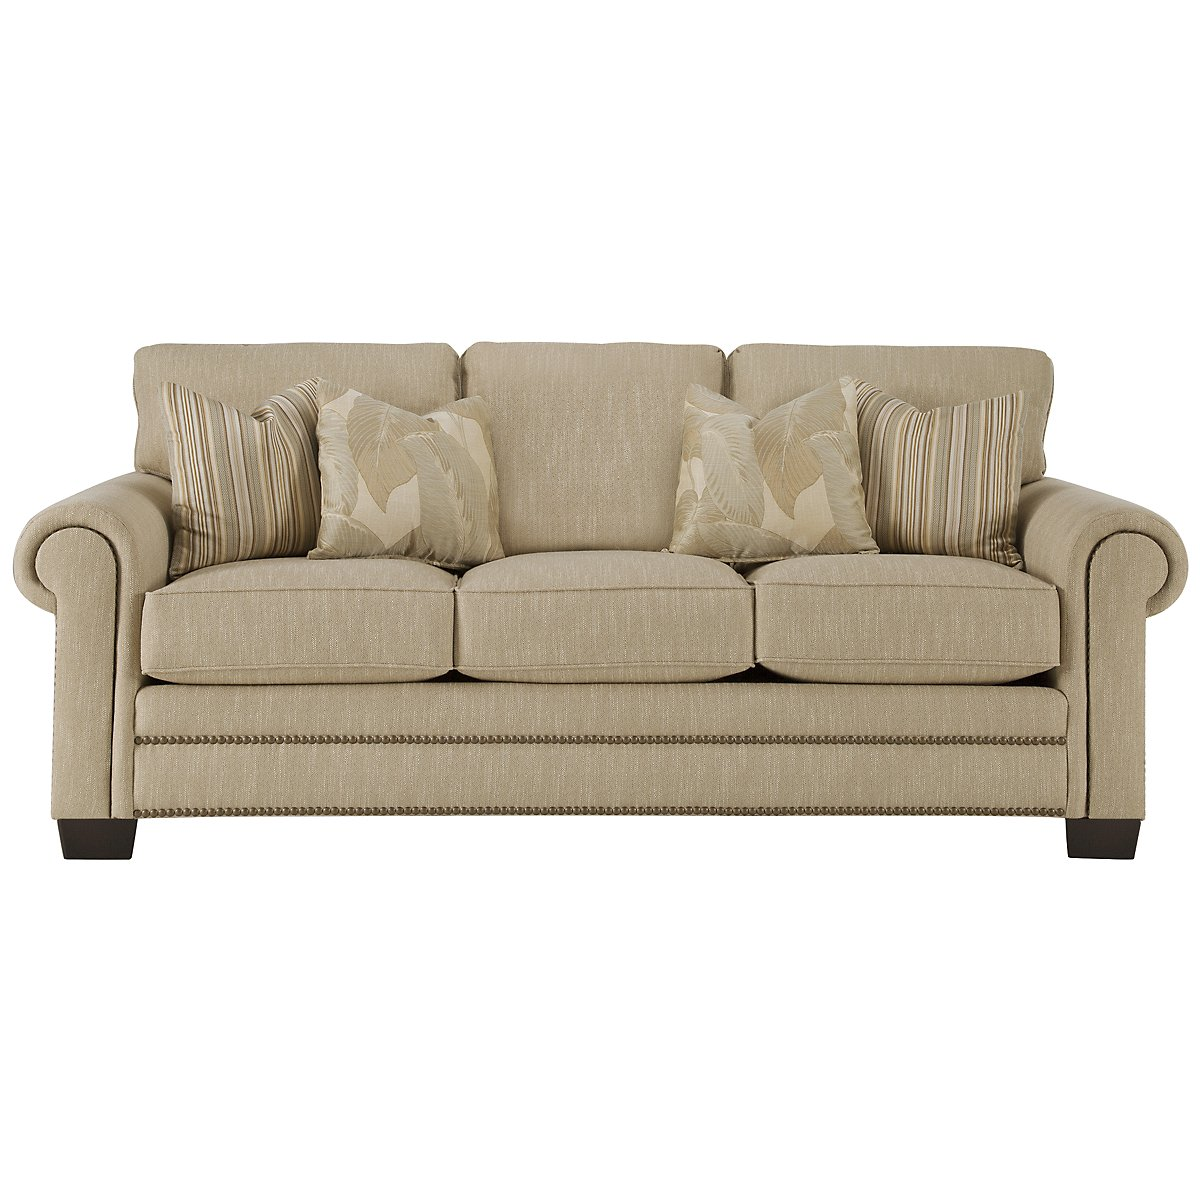 Erin Lt Brown Fabric Sofa